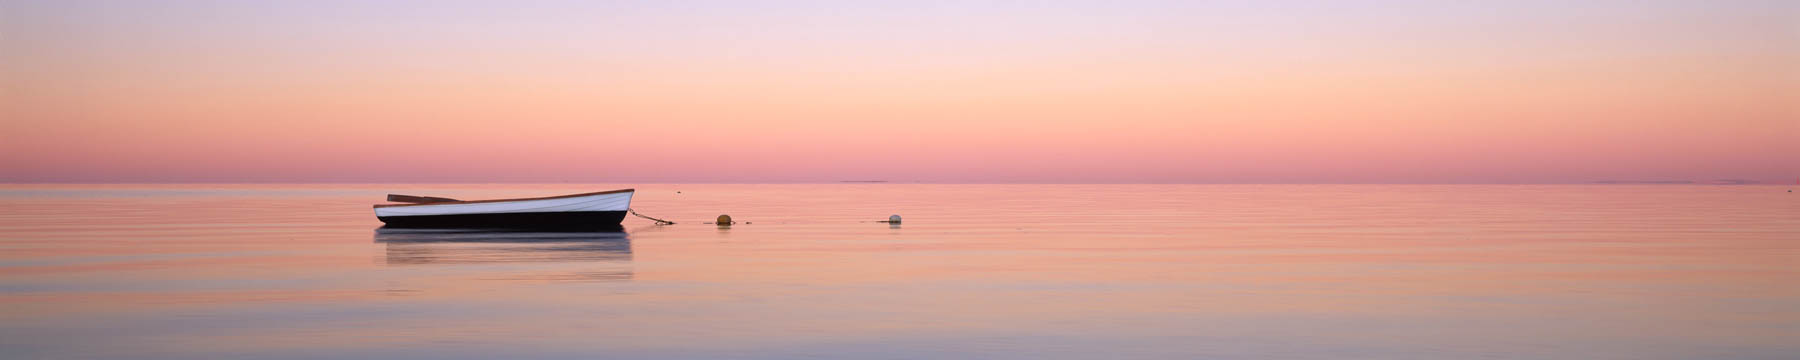 A small dinghy at sunrise in Shark Bay, WA, Australia.